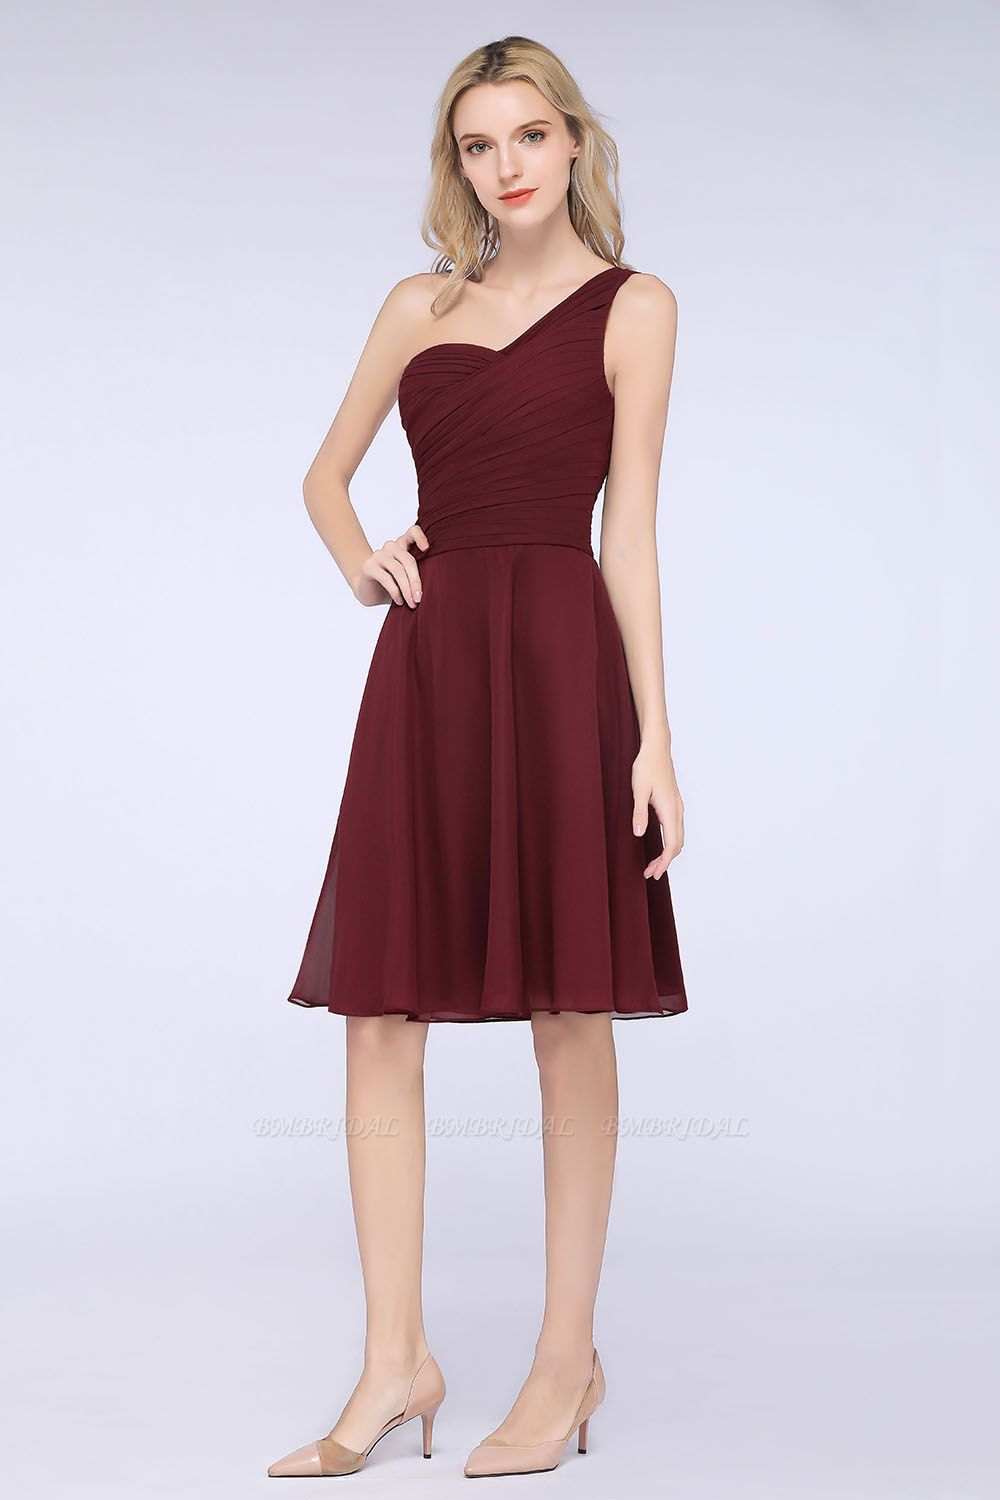 BMbridal Chic One-Shoulder Short Burgundy Affordable Bridesmaid Dress with Ruffle